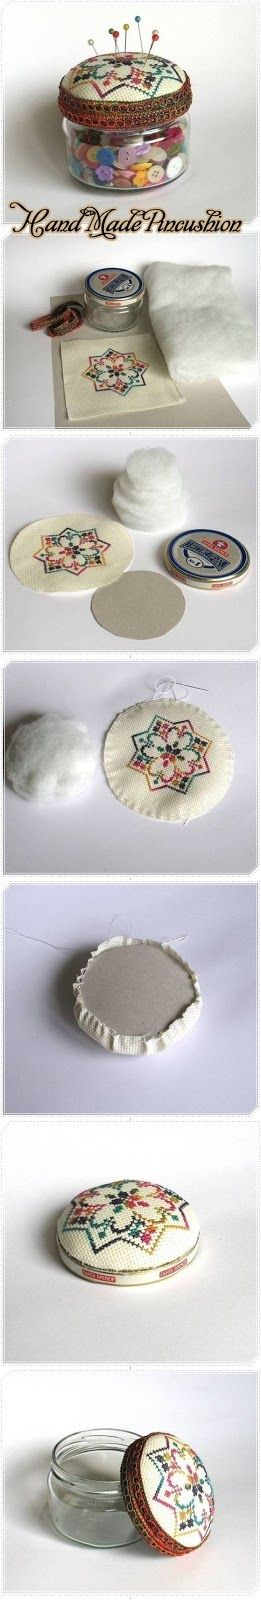 The Best Crafts from Pinterest: Hand Made Pincushion - I would store pins, not buttons in the jar.